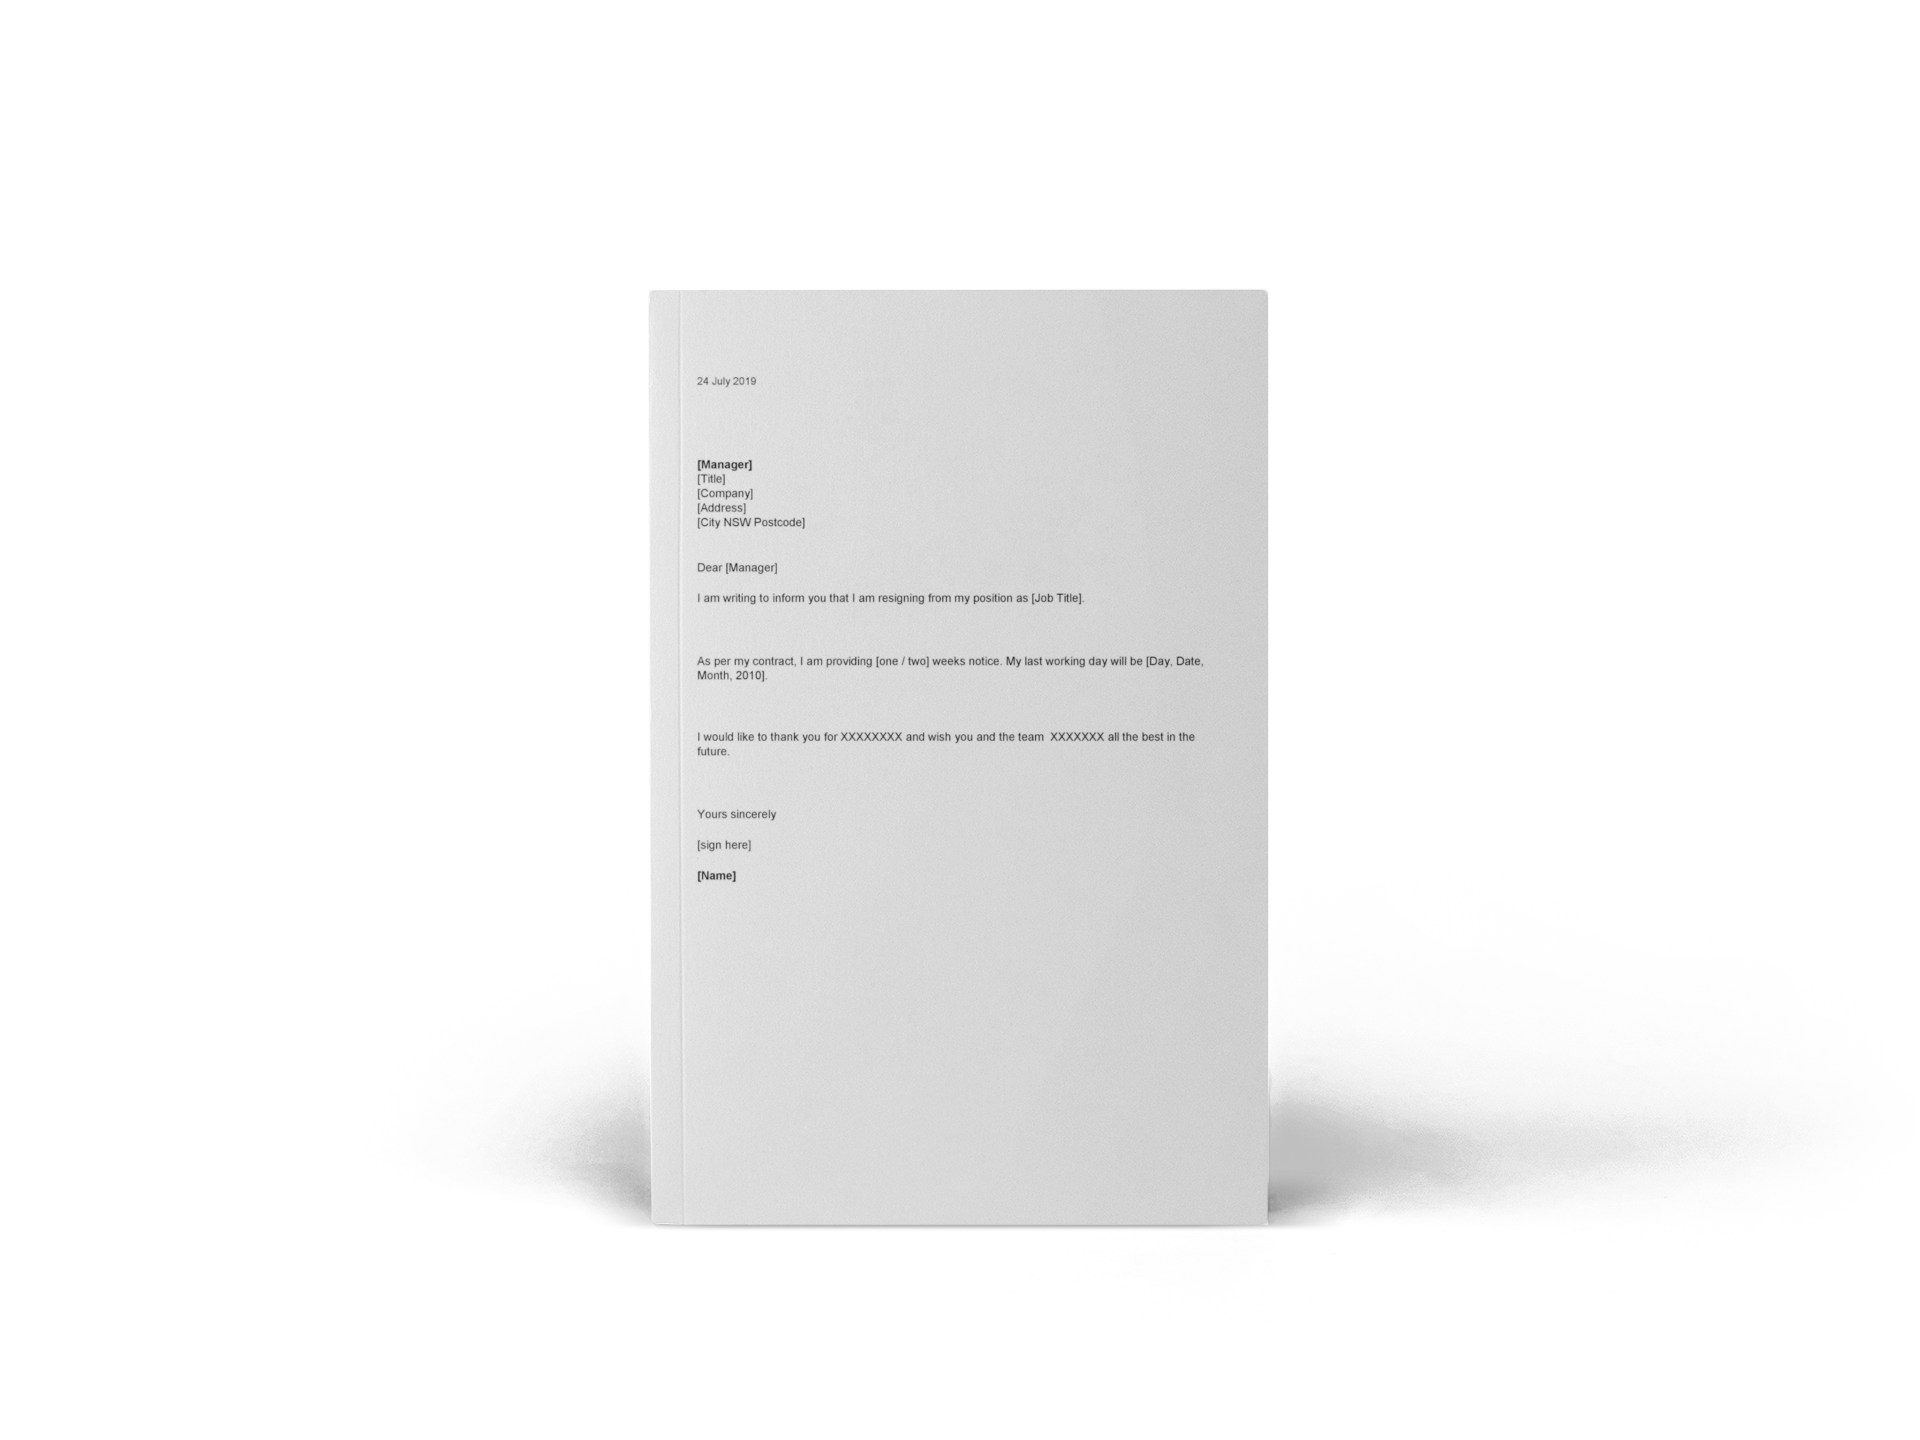 Resignation Letter Template (Word)